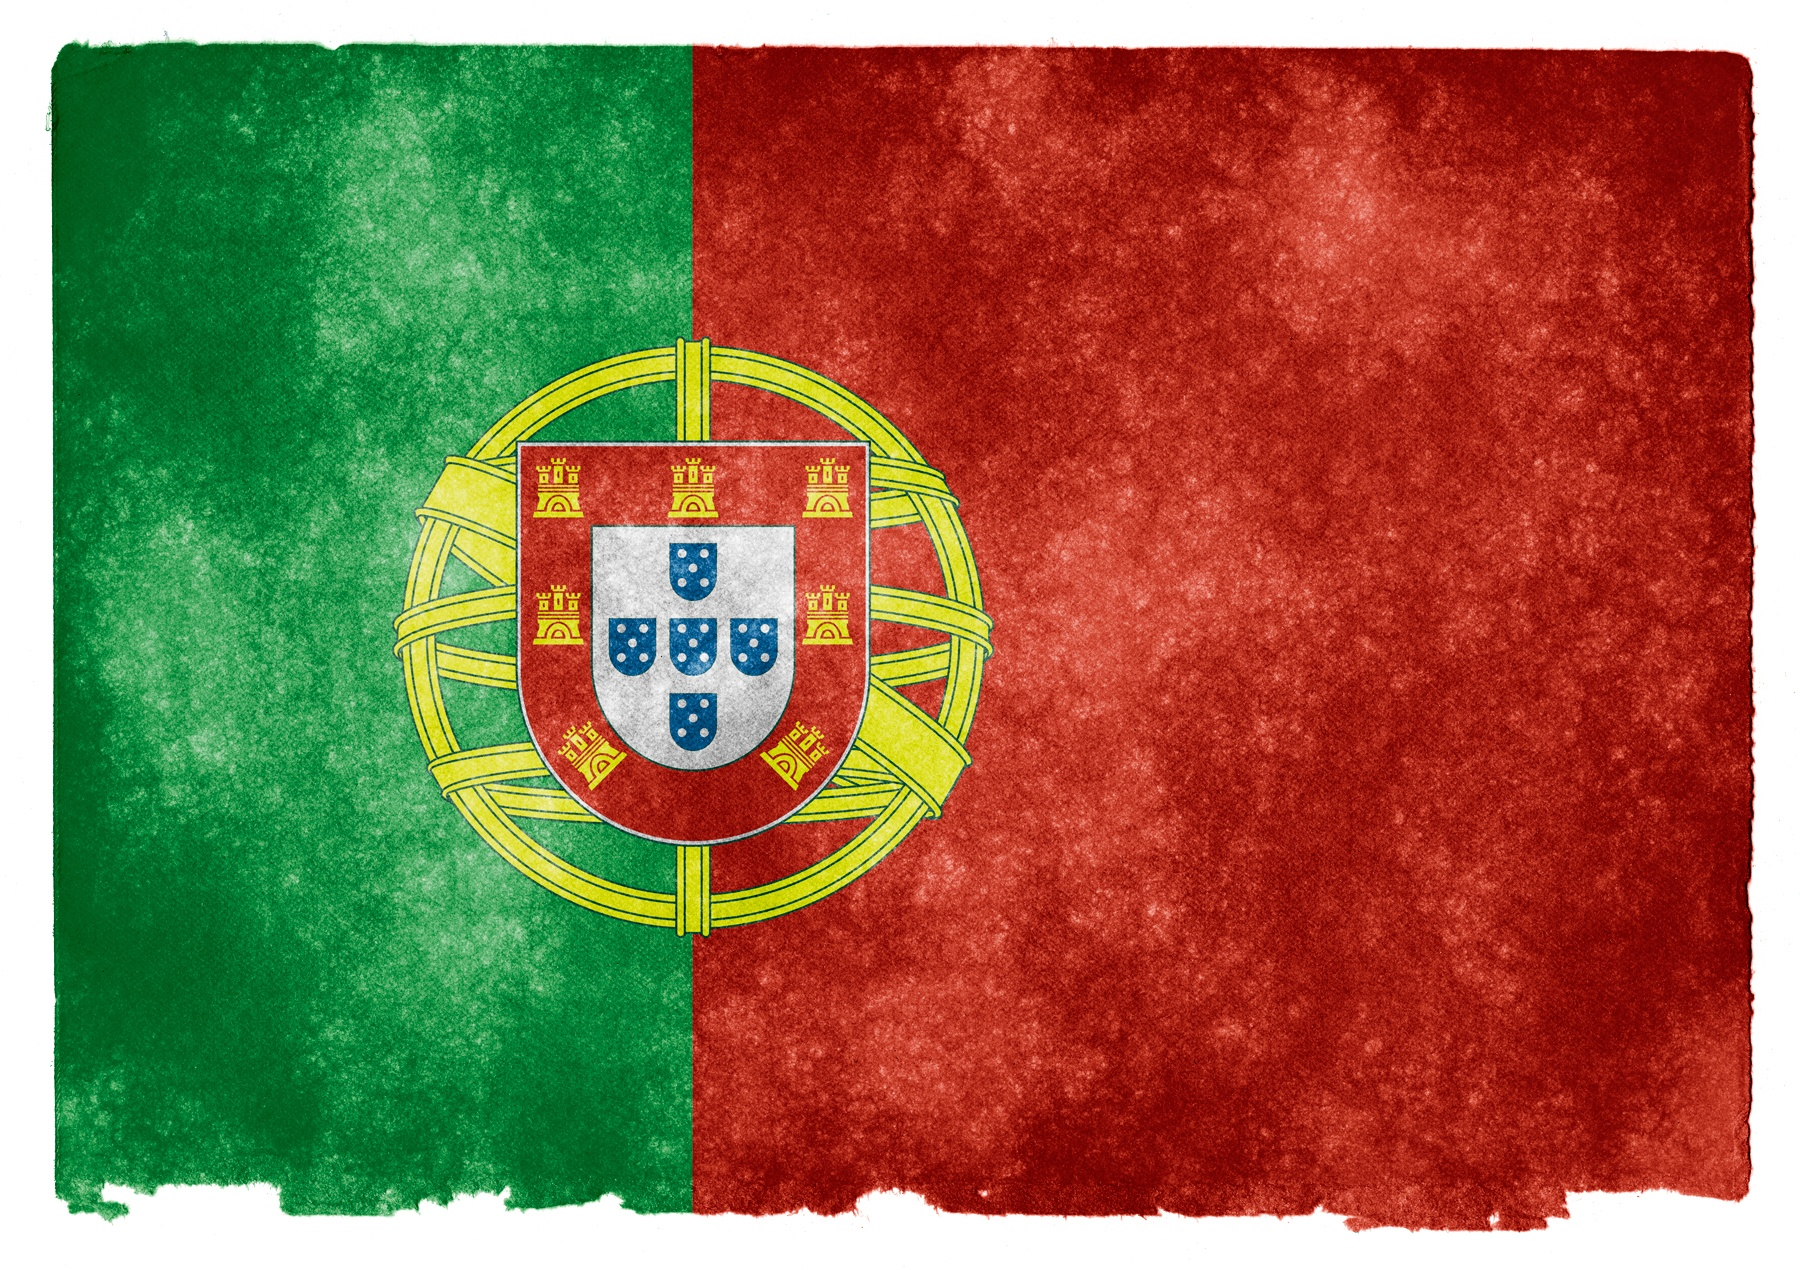 stockvault-portugal-grunge-flag134362.jpg